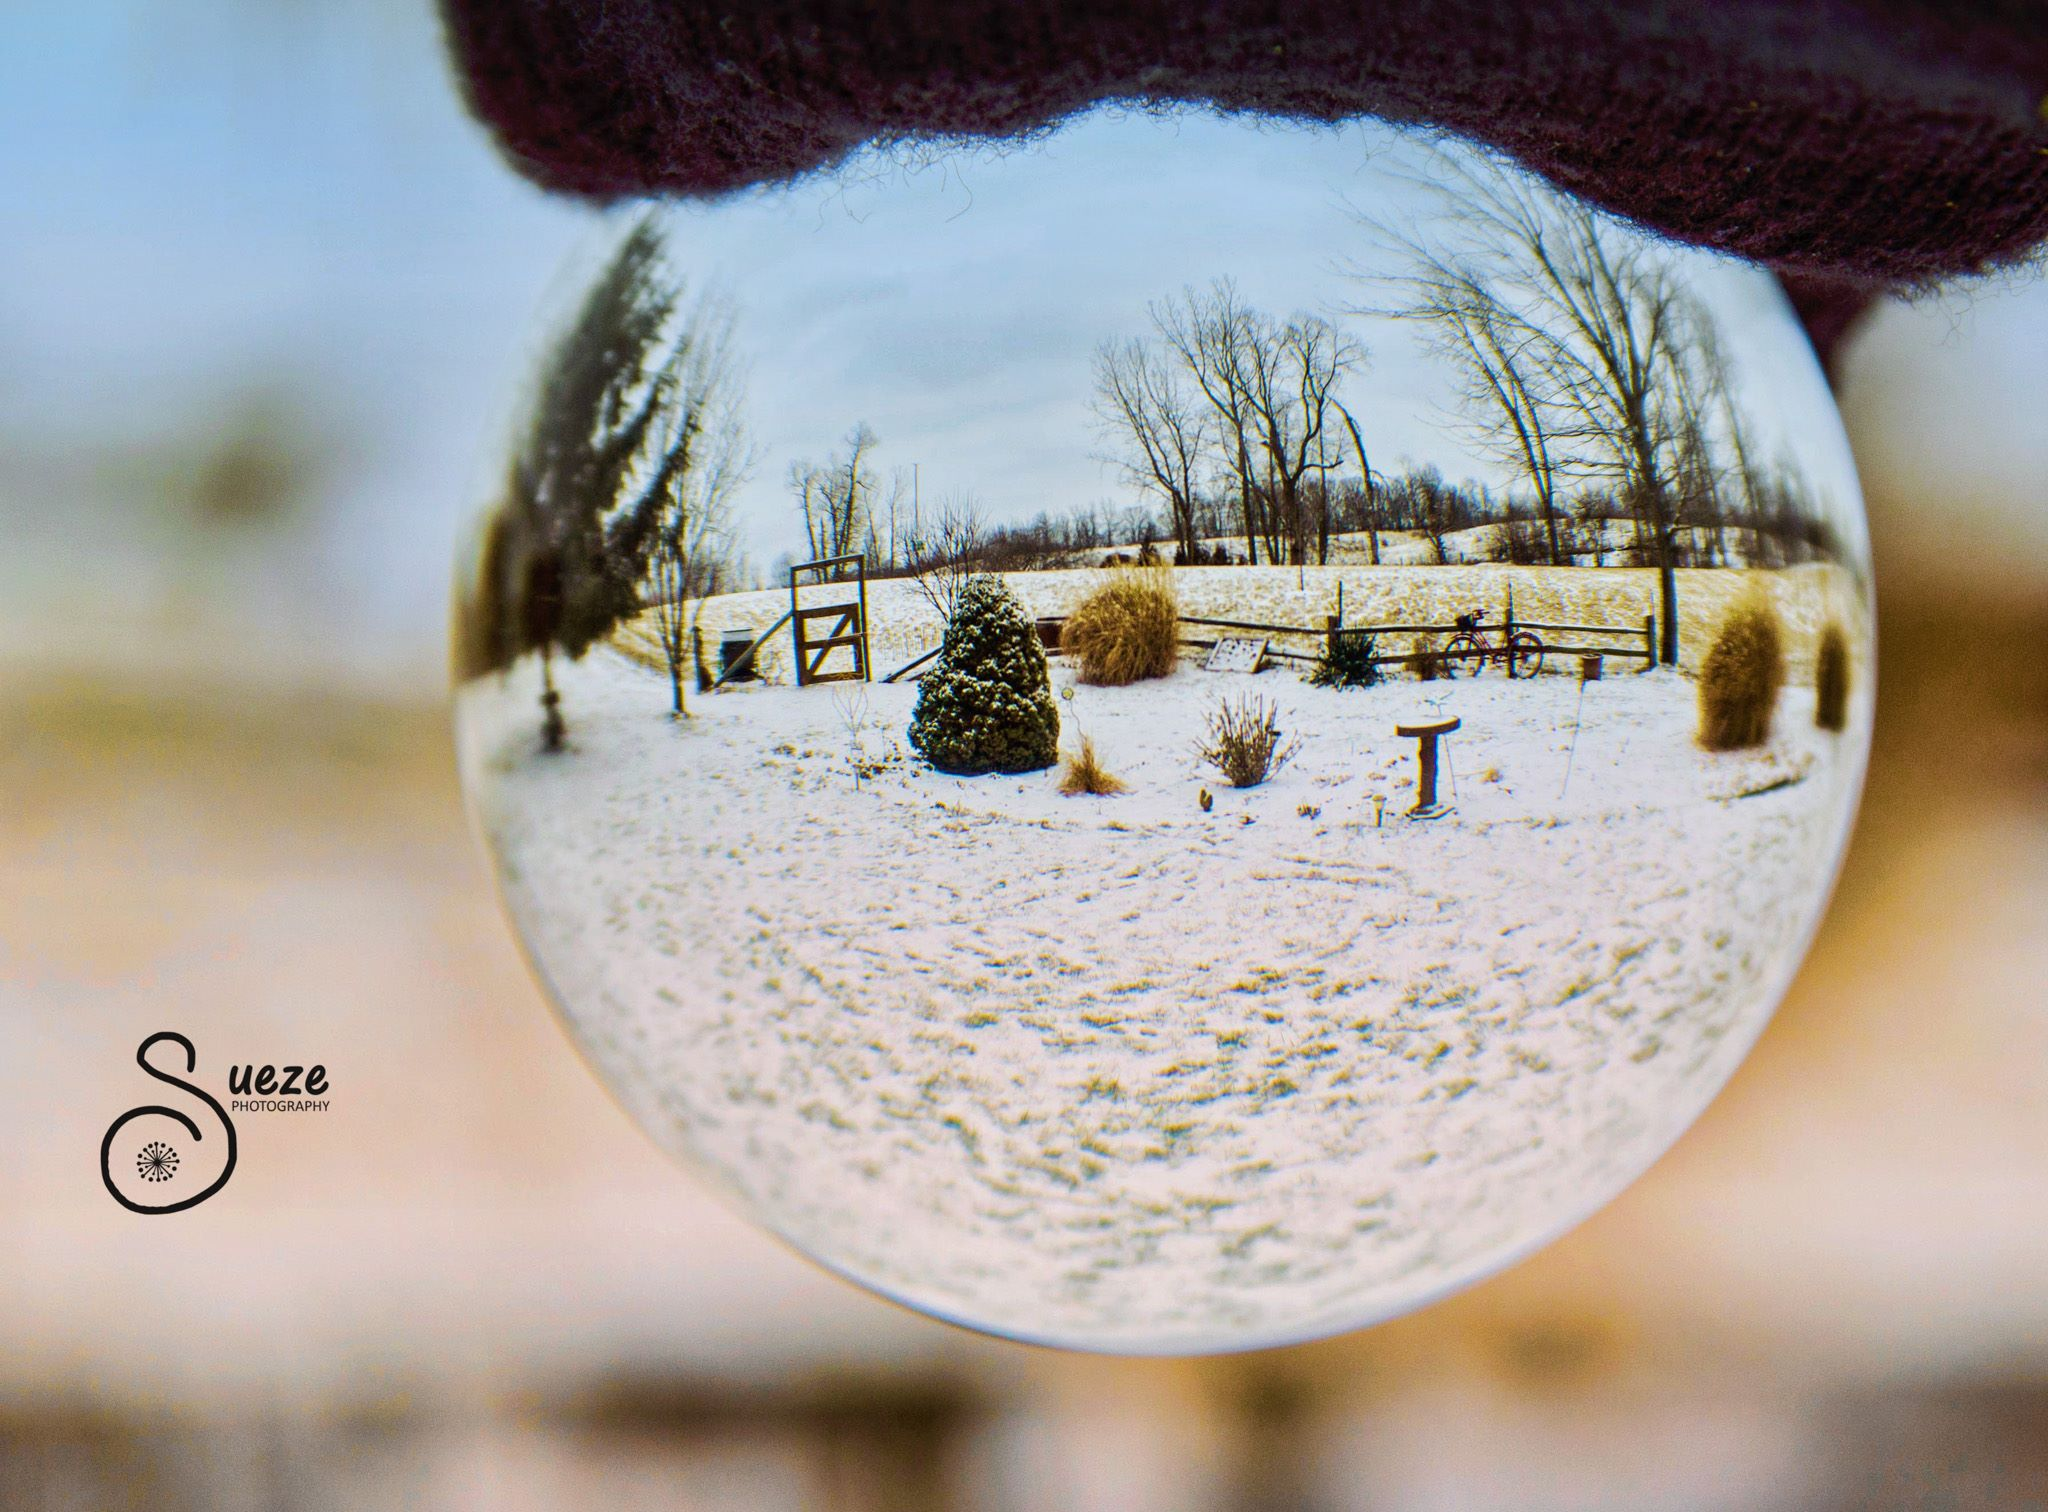 1491310_10202174959969034_1502206049_o Fun Photo Activity Using a Crystal Ball Activities Assignments Photography Tips Photoshop Tips & Tutorials